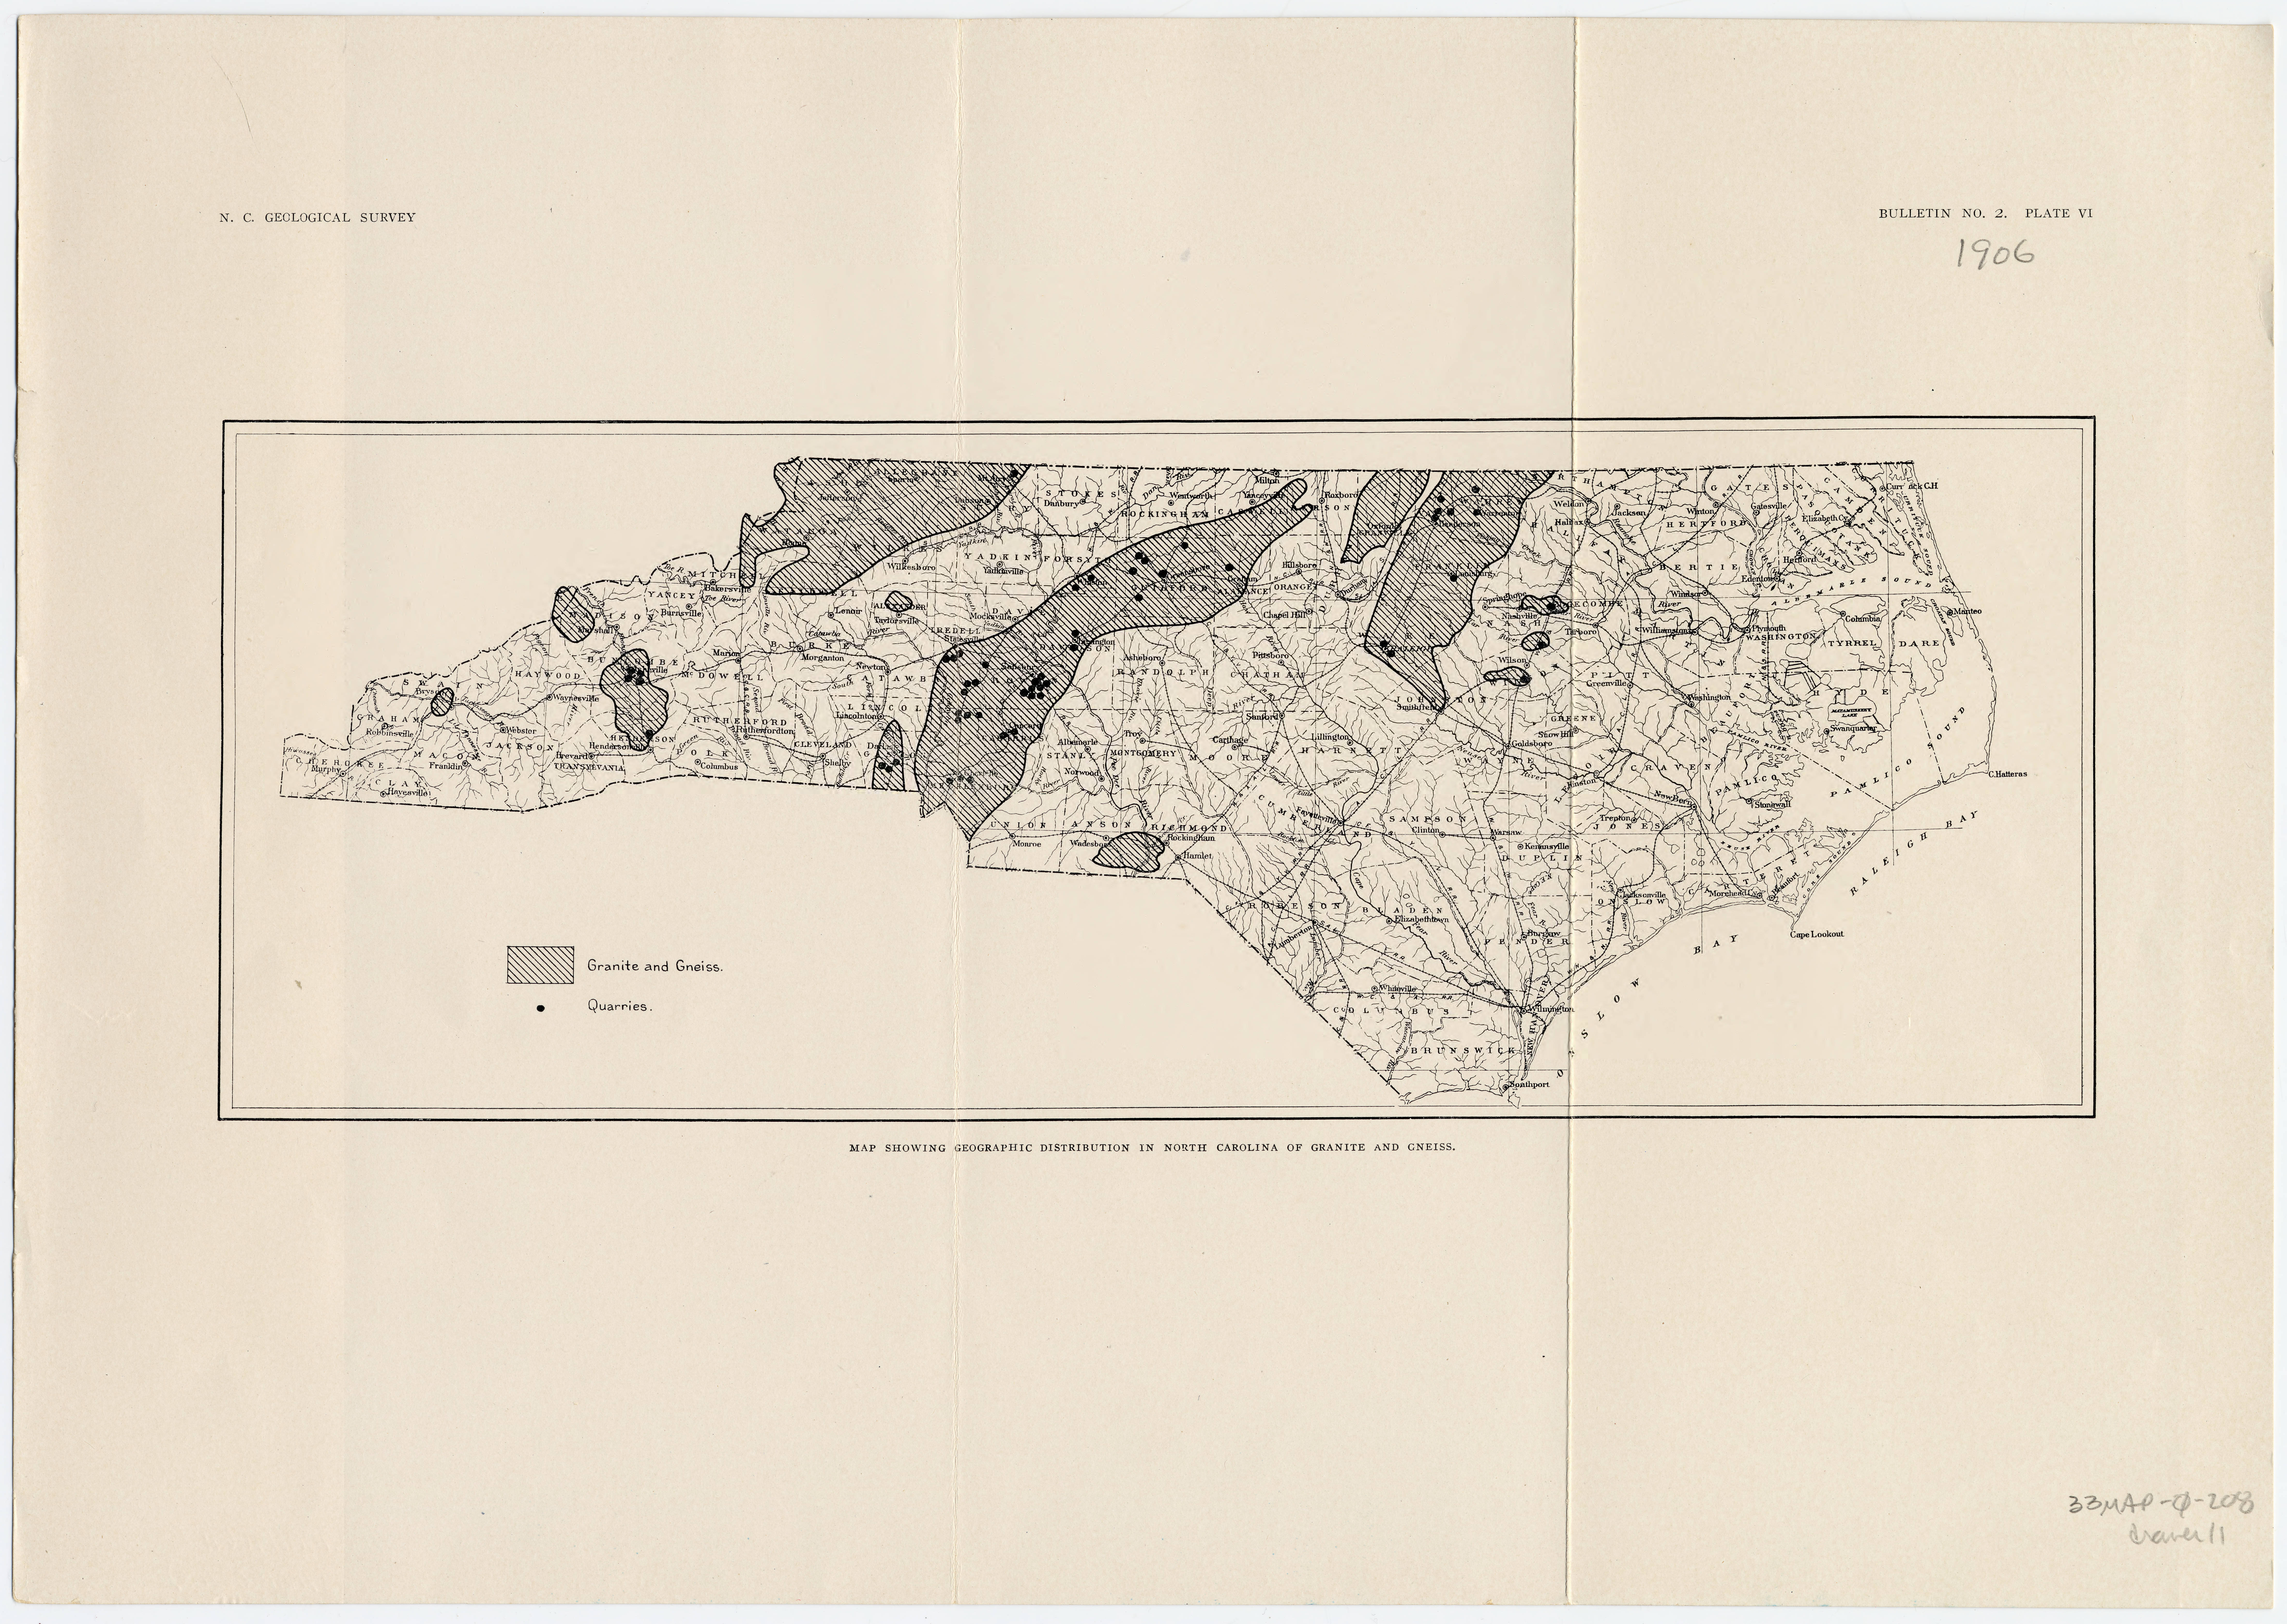 Map_showing_geographic_distribution_in_North_Carolina_of_granite_and_gneiss